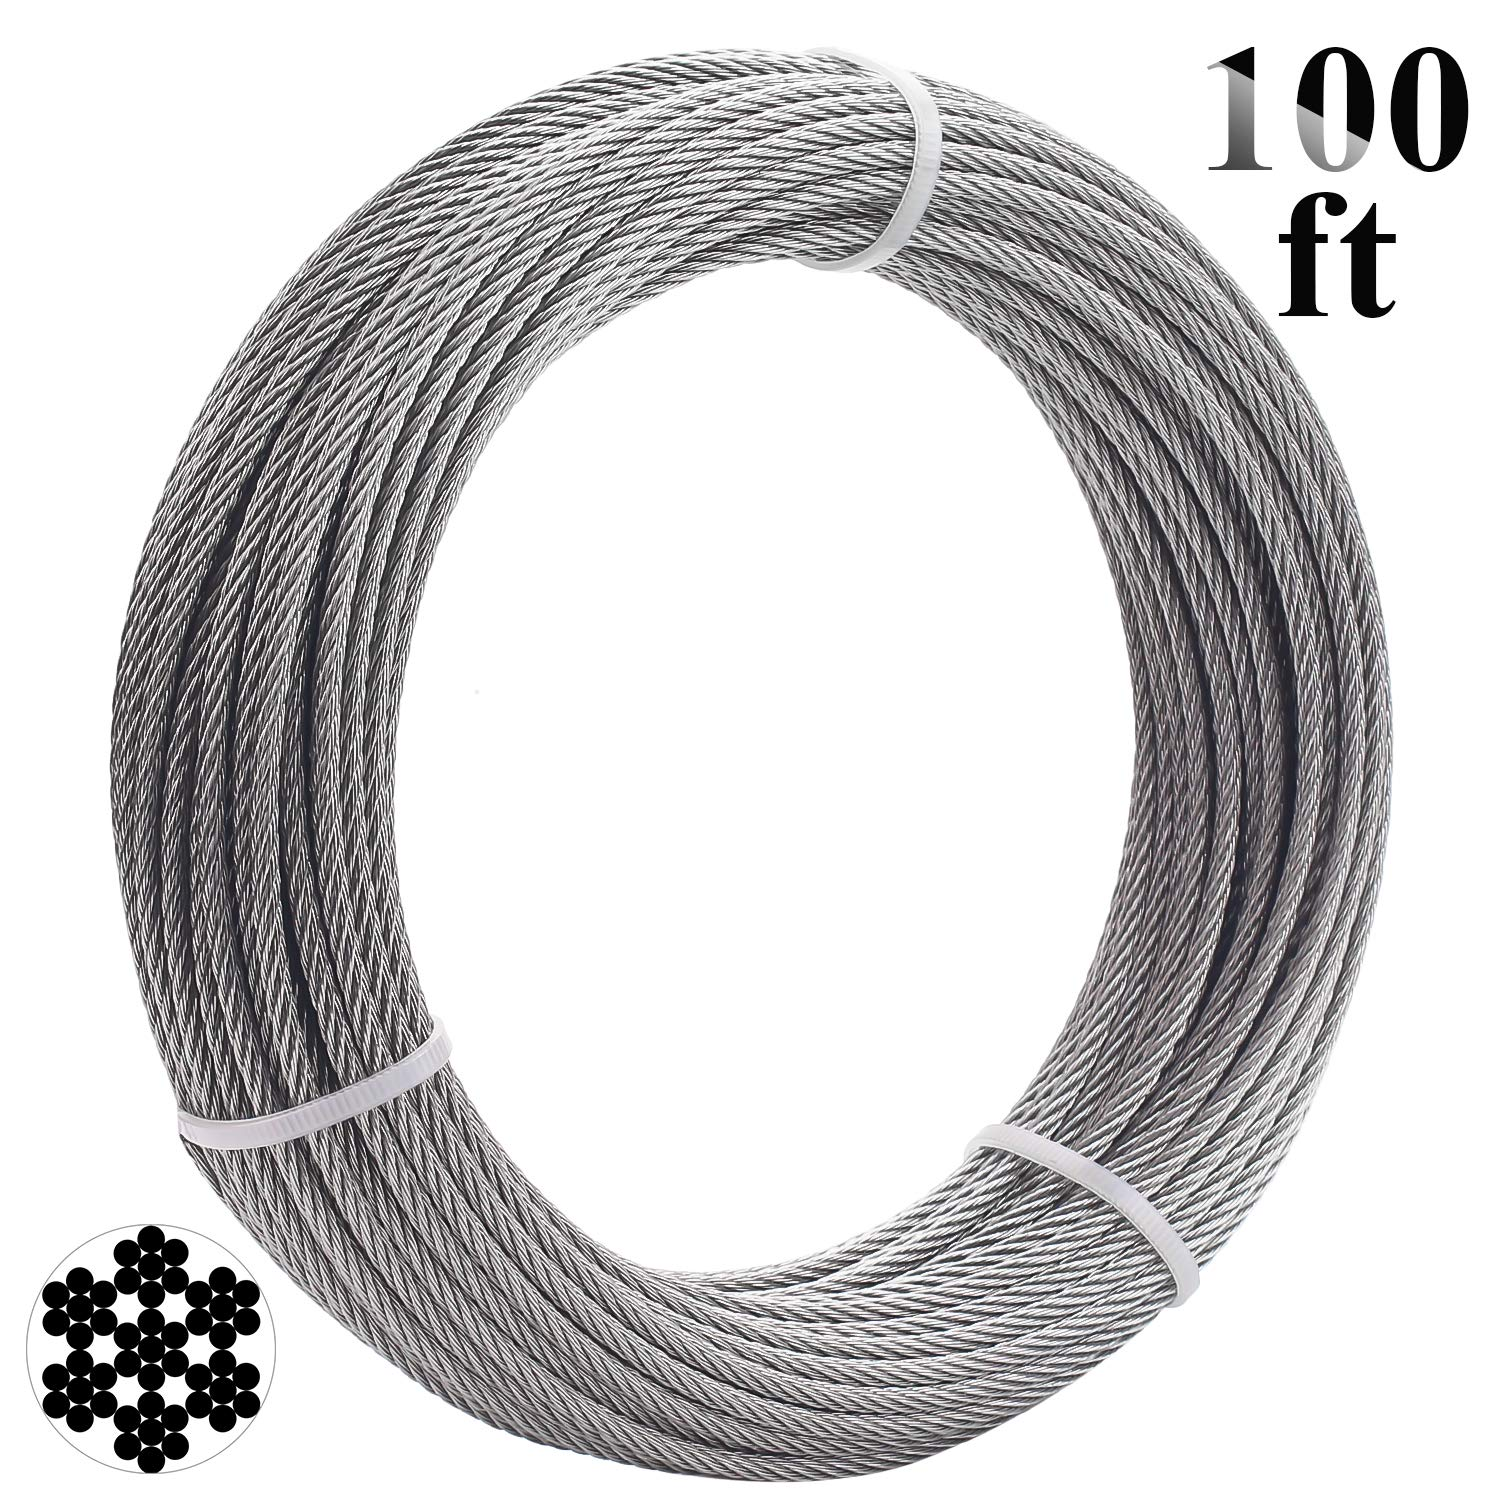 Favordrory 1/8 Inch T316 Marin Grade Stainless Steel Aircraft Wire Rope Cable for Railing, Decking, DIY Balustrade, 7x7 Construction, 100 Feet by Favordrory